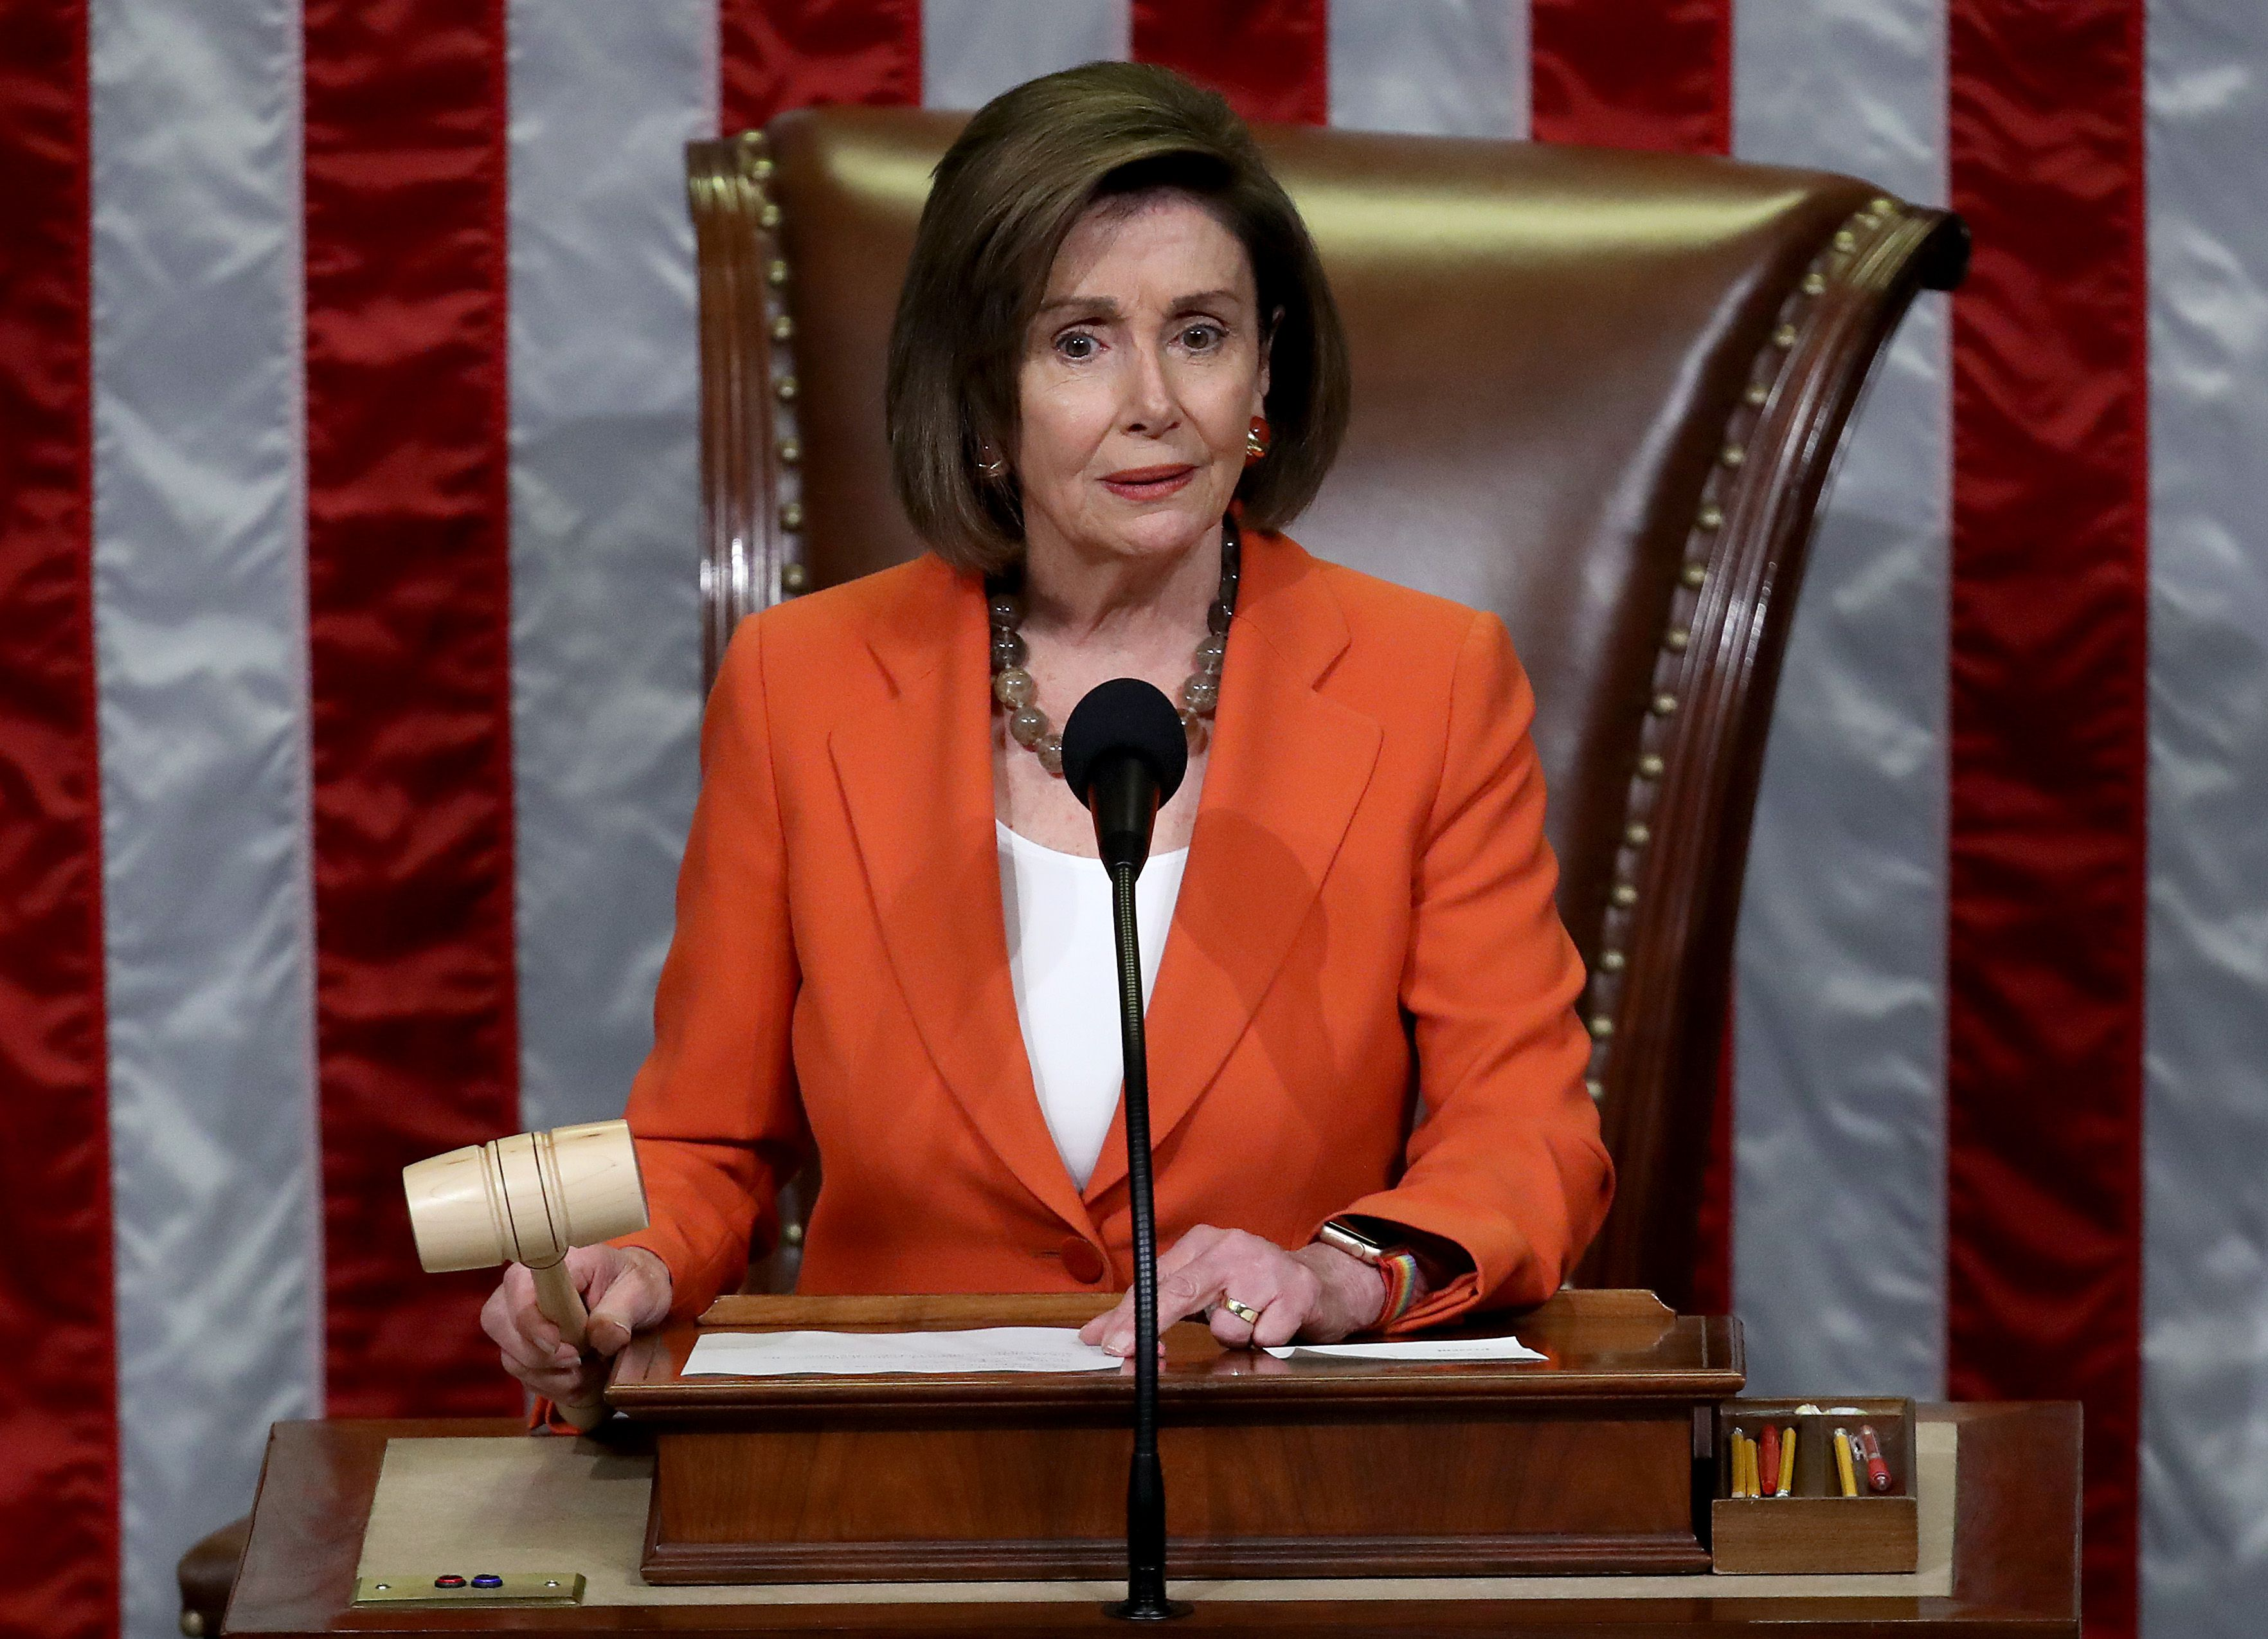 Pelosi lists House-passed bills stalled in Senate amid impeachment attacks - Axios